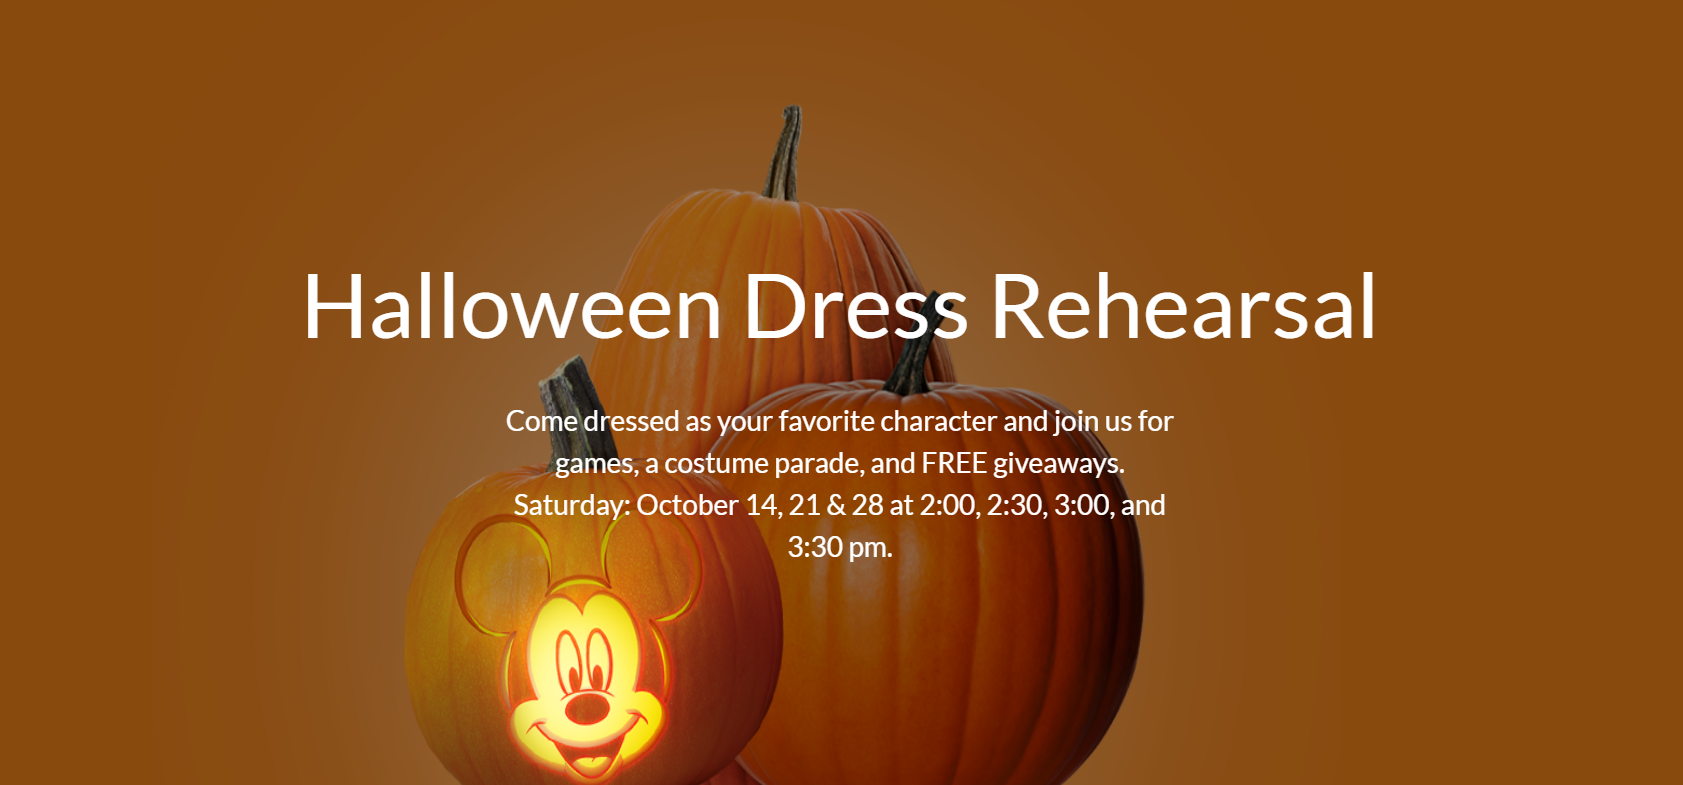 disney store halloween dress rehearsal party mommypoppins things to do in los angeles with kids